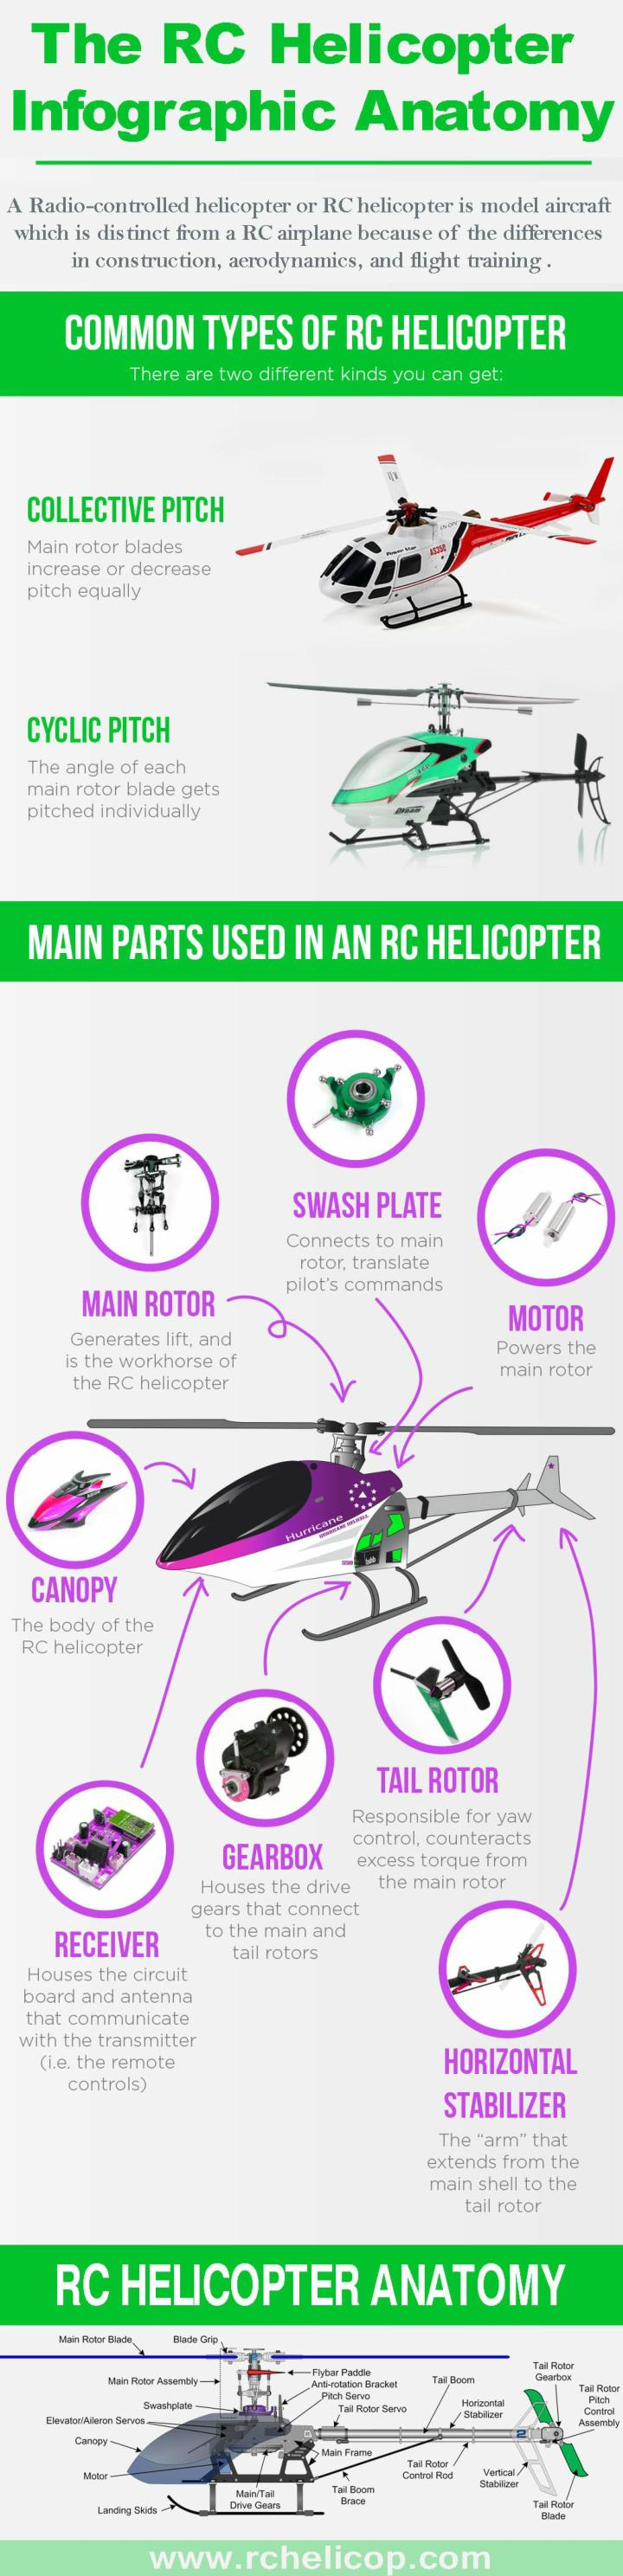 Best rc helicopter infographic anatomy